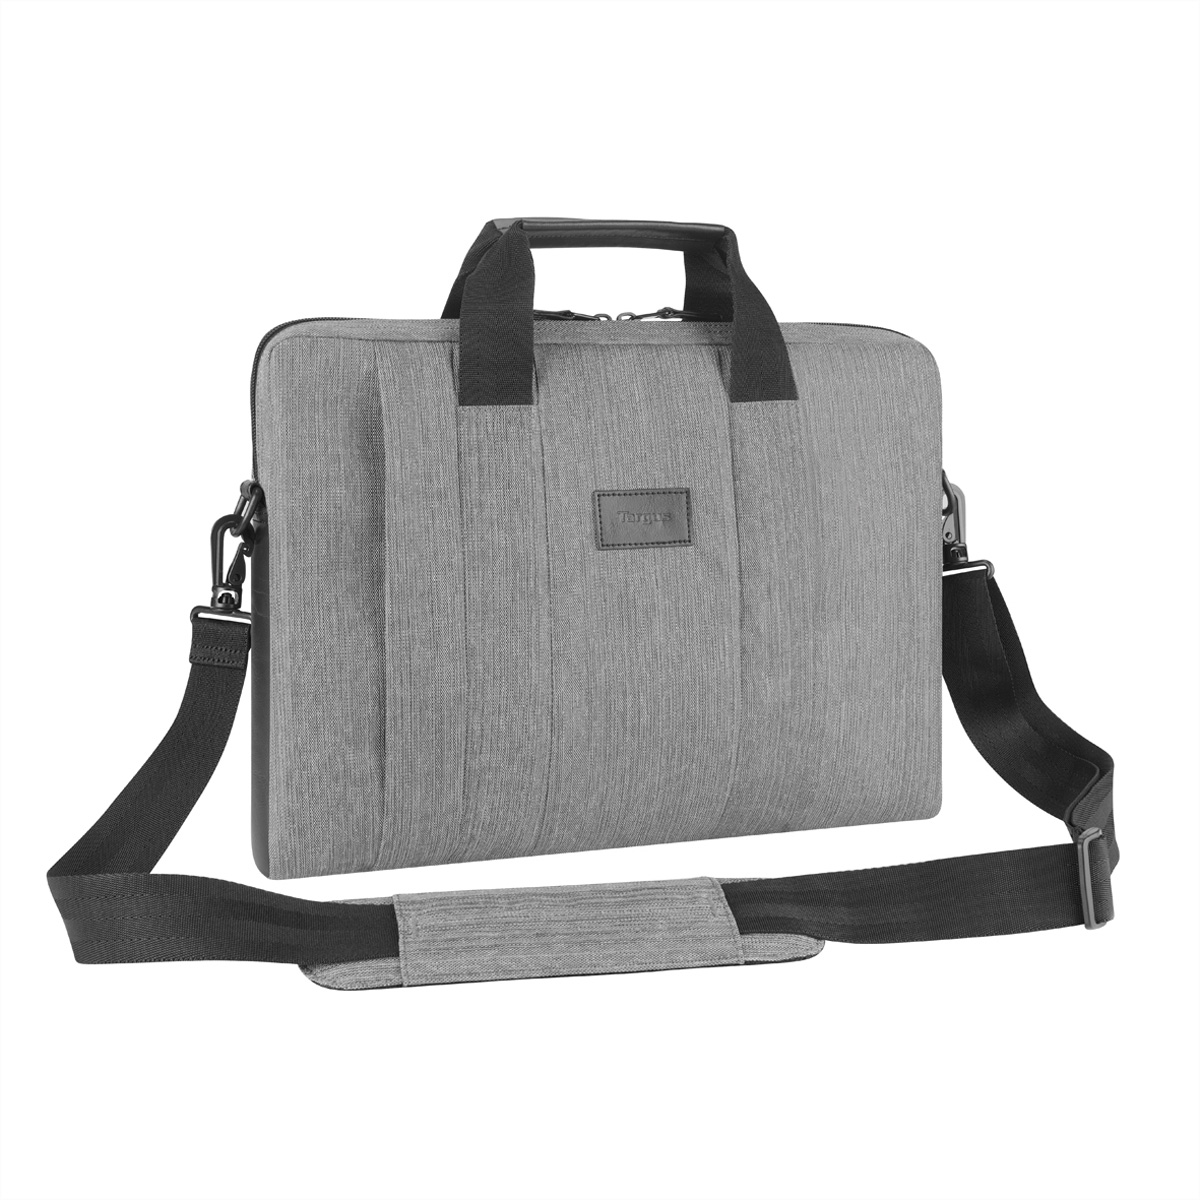 "TARGUS City Smart Notebookhülle / Tasche 39.6cm (15.6""), grau (TSS59404EU)"